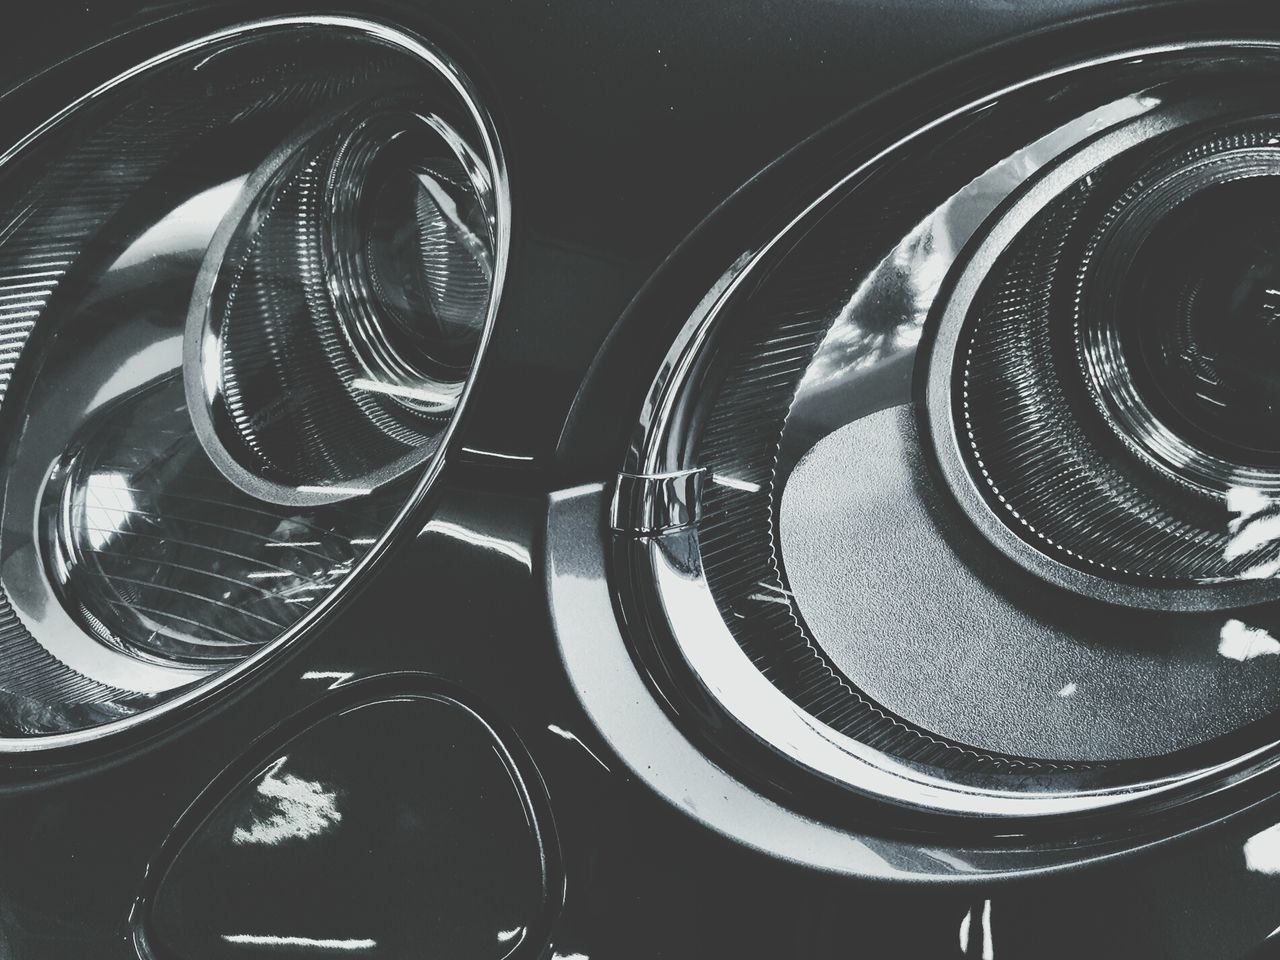 Car Hood Reflections Benly Chrome Metals Texture And Surfaces Textures Close-up Textures And Surfaces Outdoors Head Lights Head Light Circle Car Lamp Lamplight